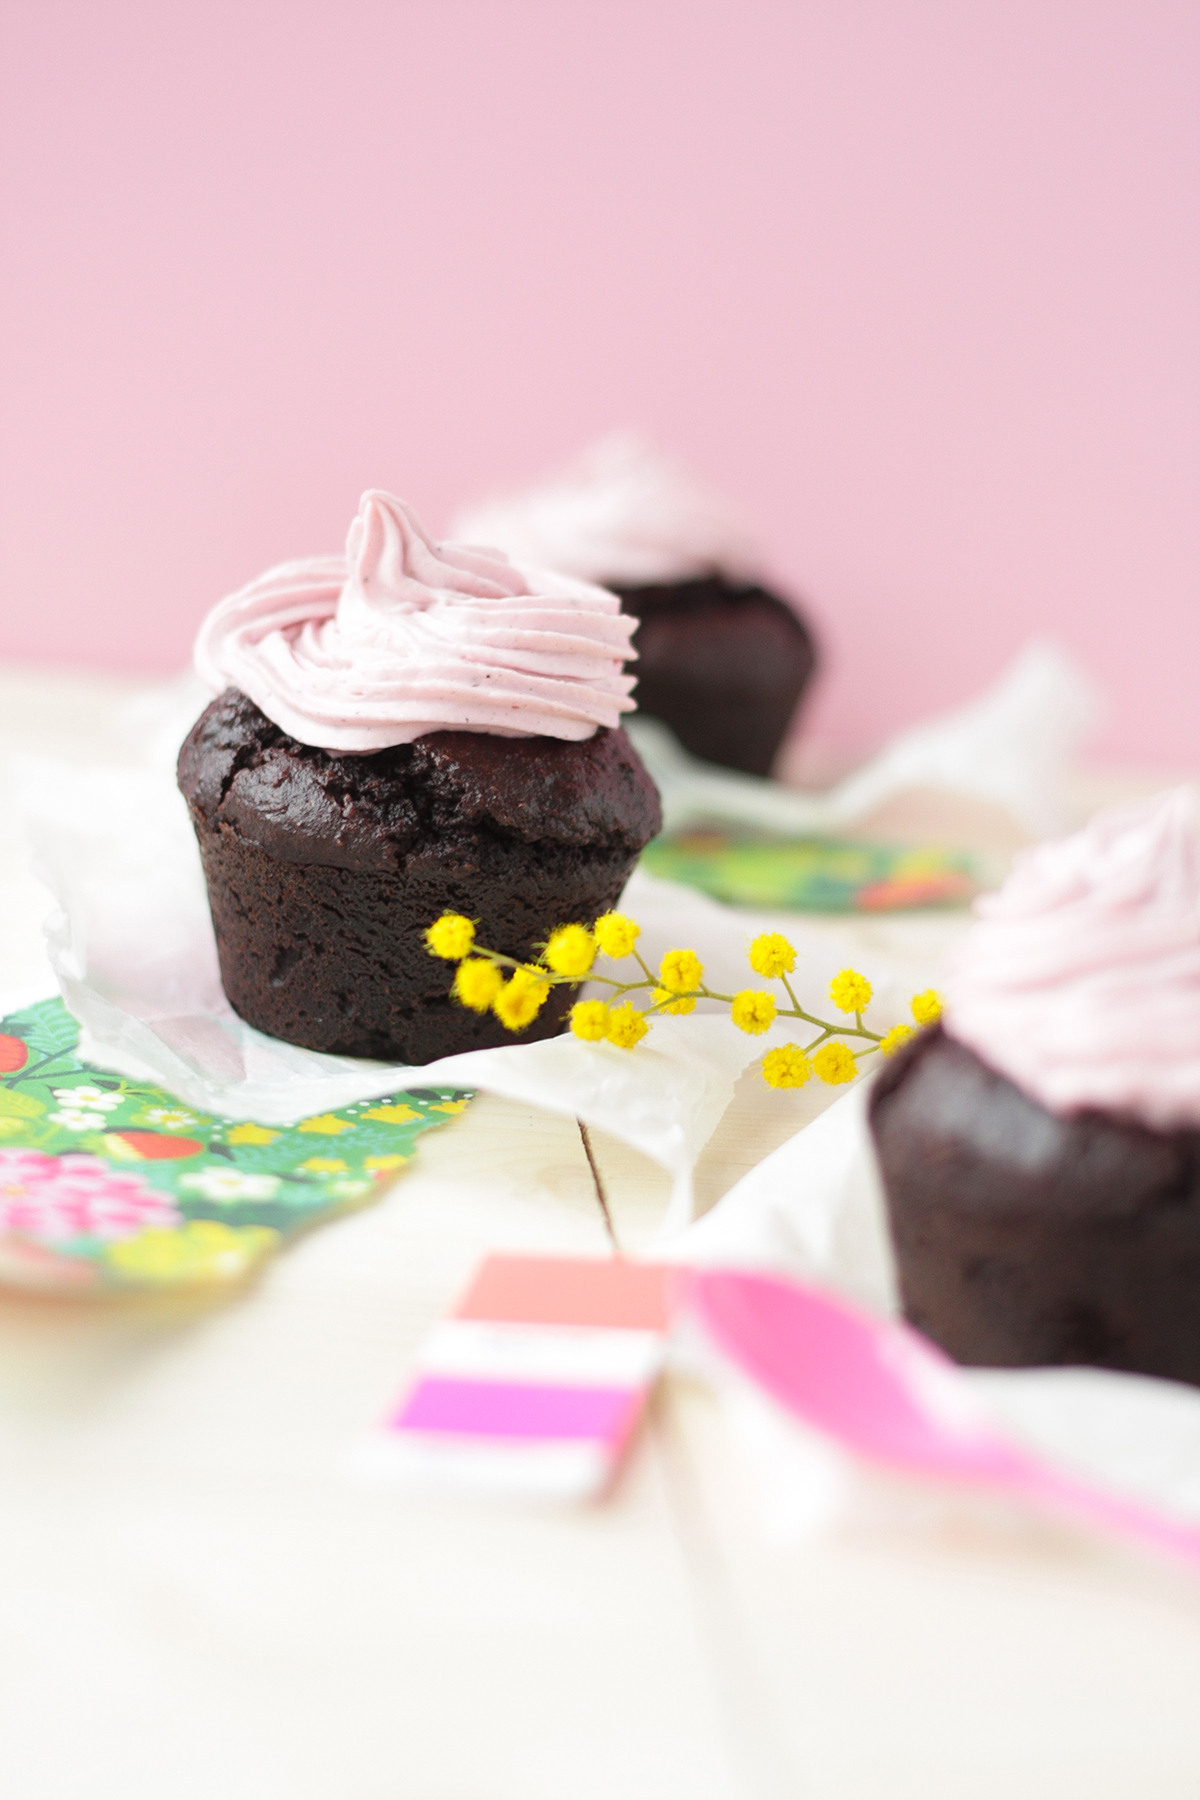 cupcakes-choco-betterave04